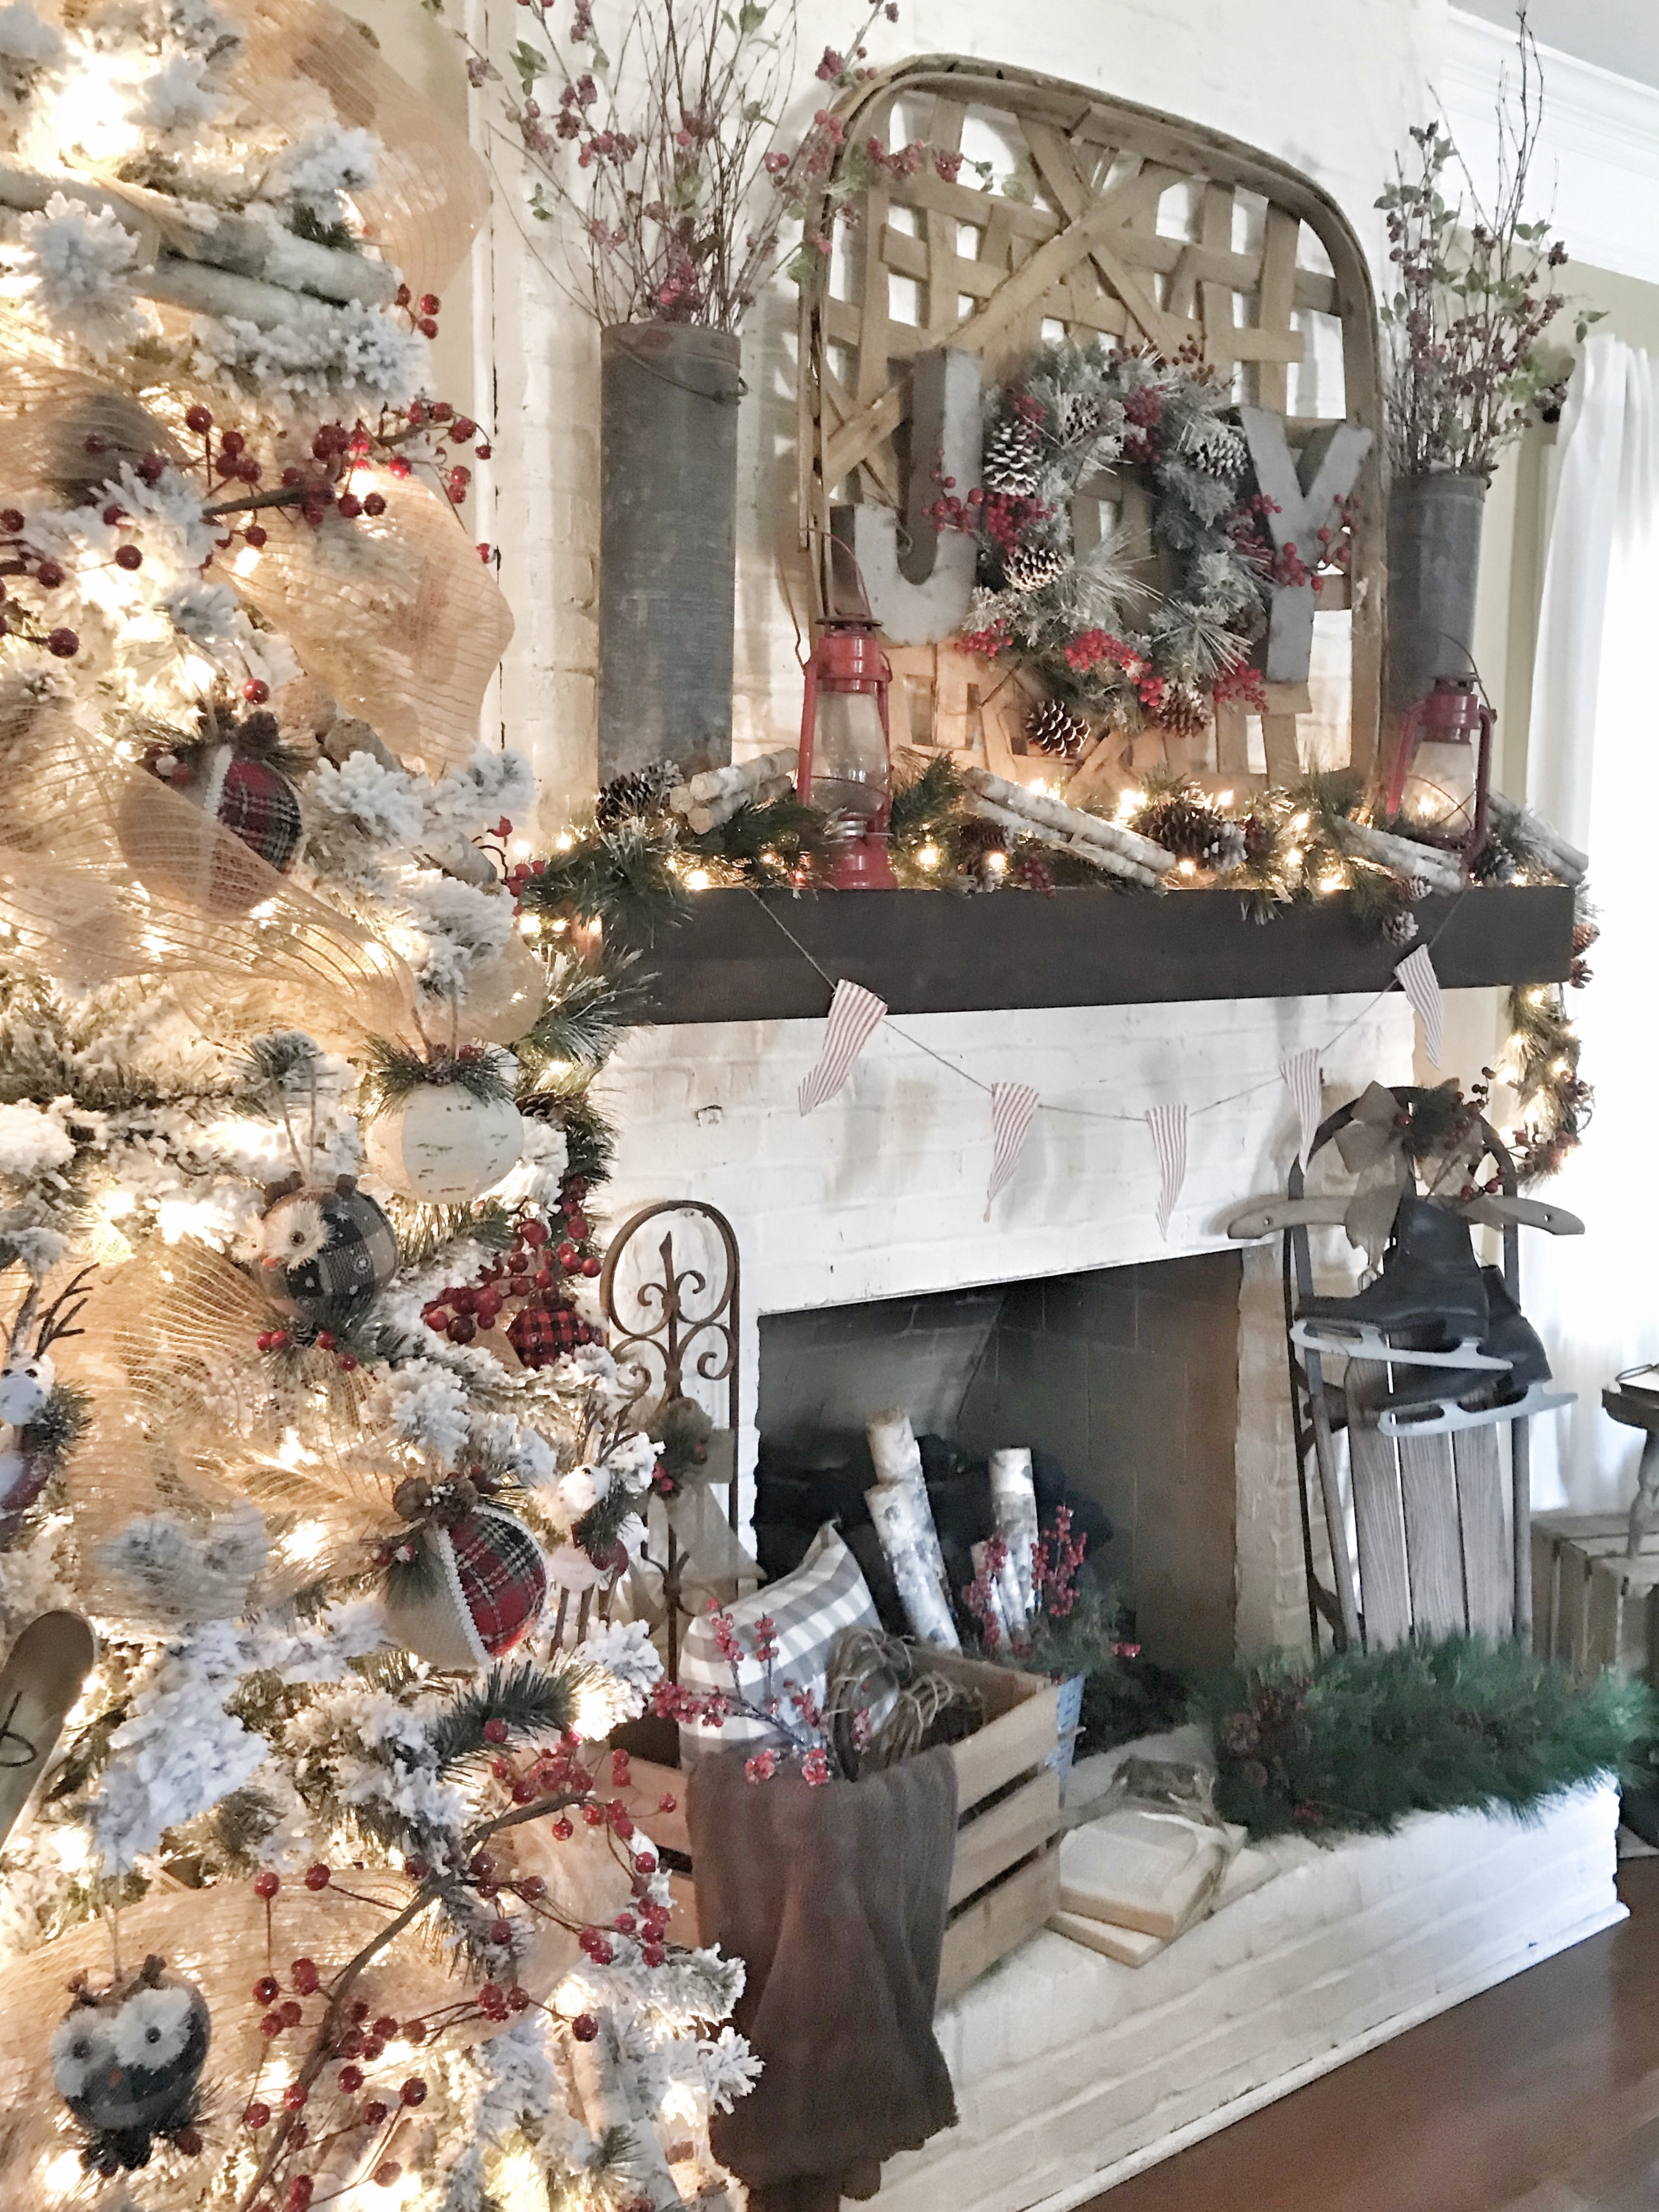 flocked Christmas tree and fireplace with Christmas decor